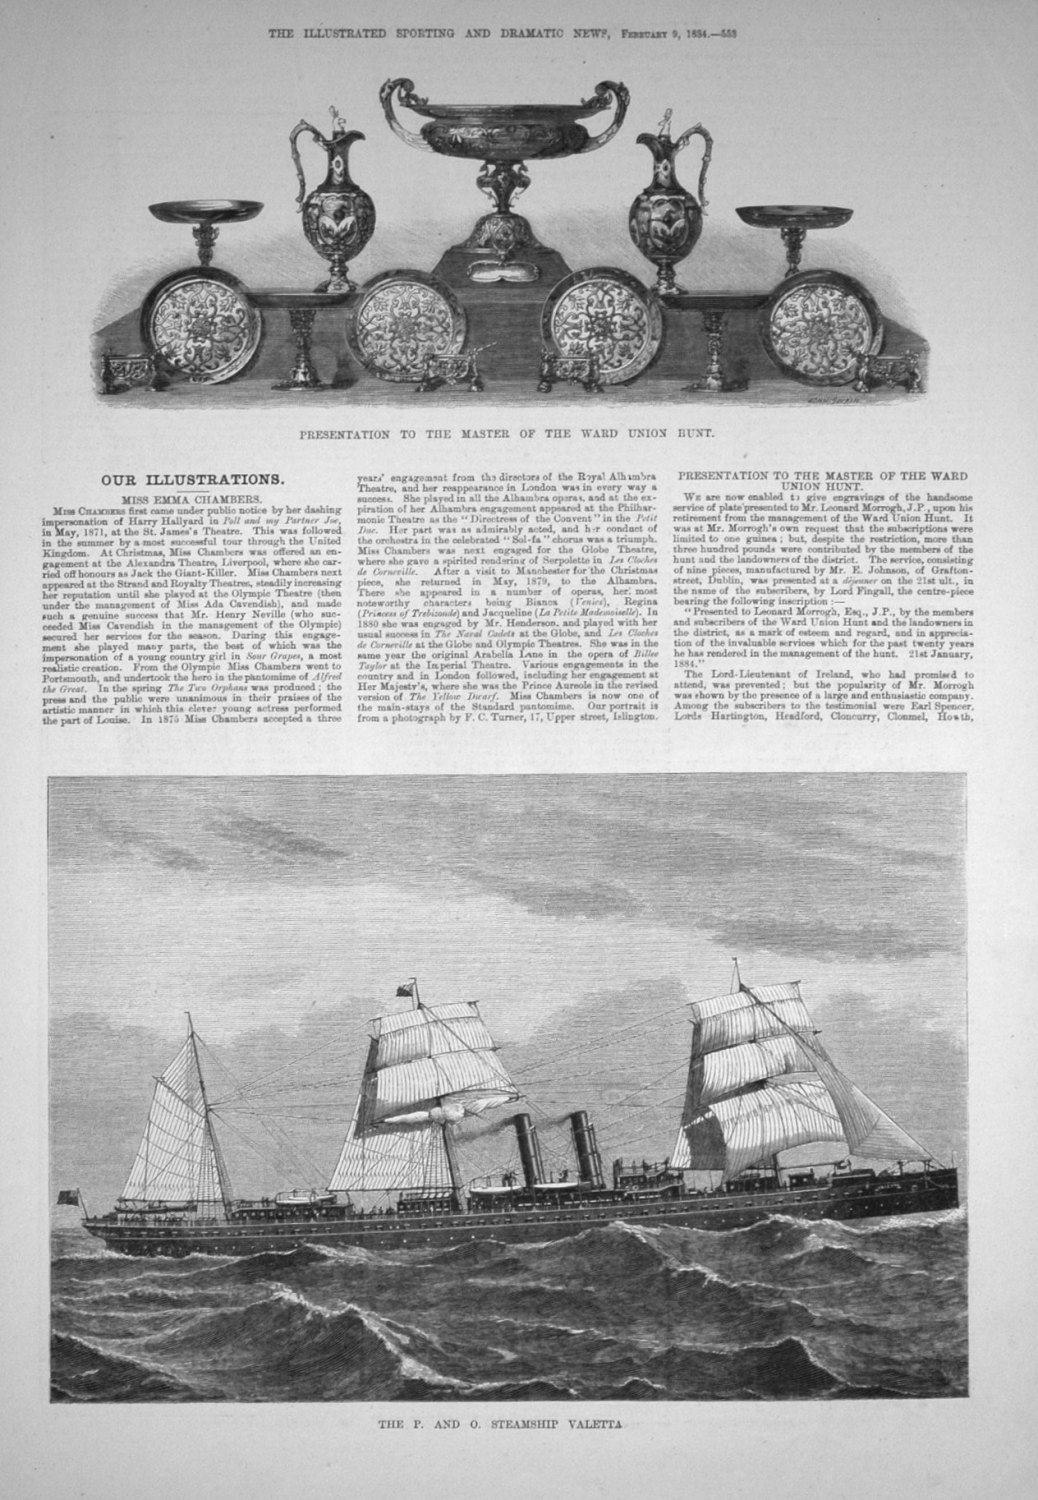 The P. and O. Steamship Valetta.